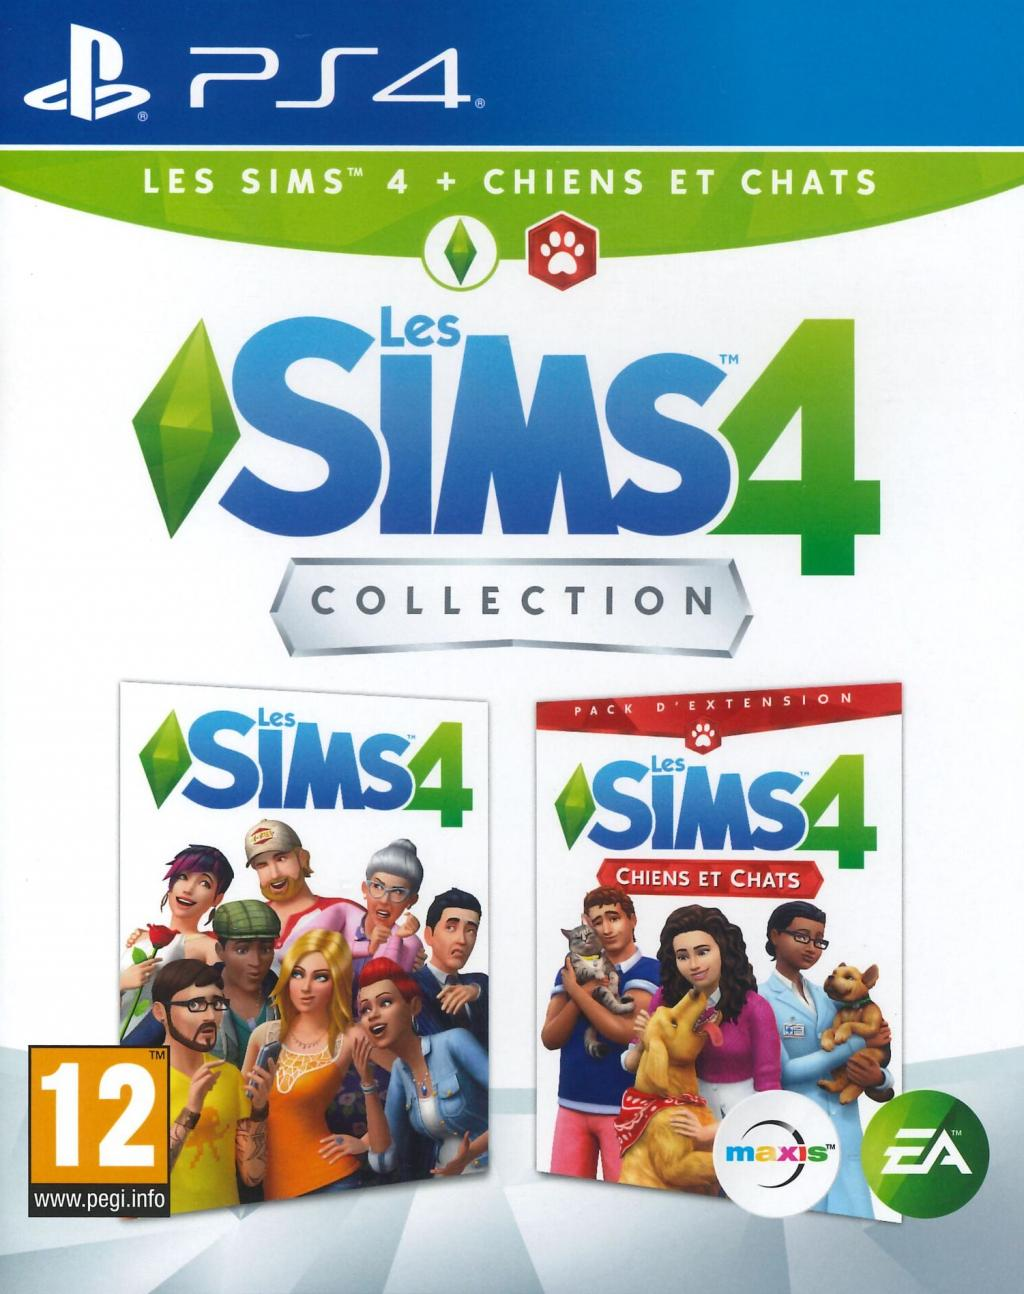 Les Sims 4 Collection - Sims 4 + Chats & Chiens (Extention Pack)